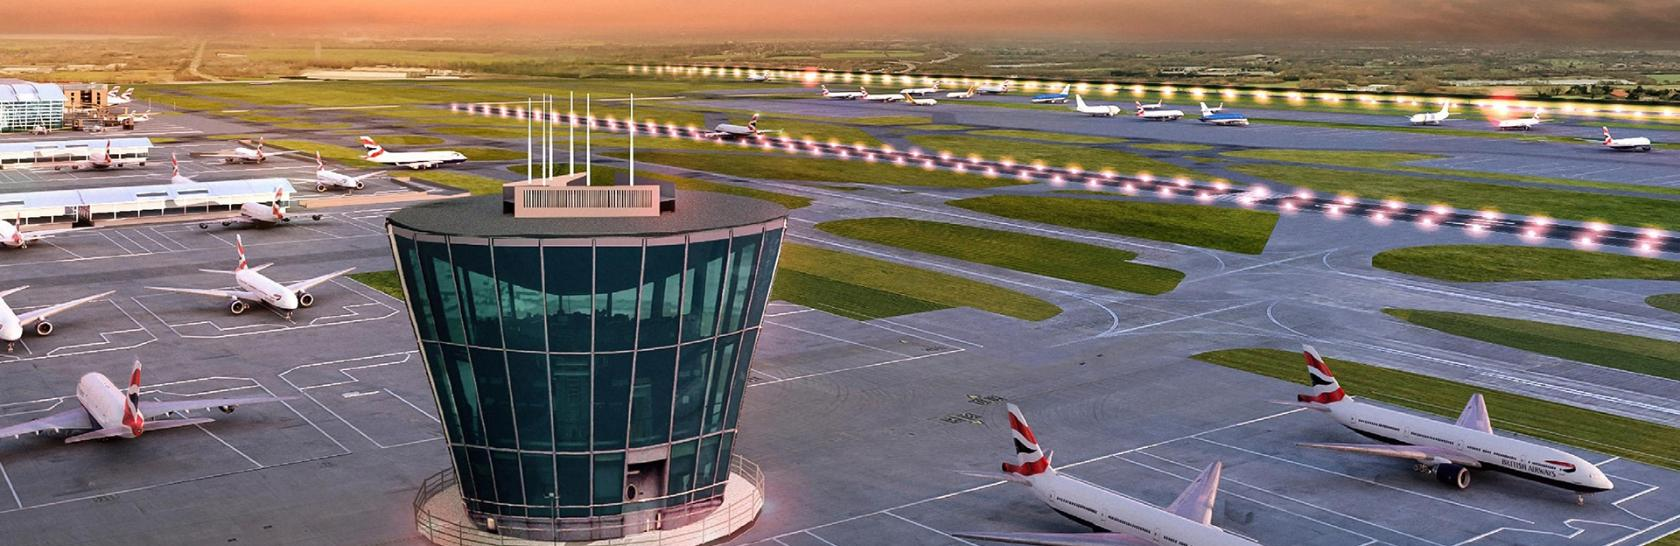 Heathrow  Airport Control Tower